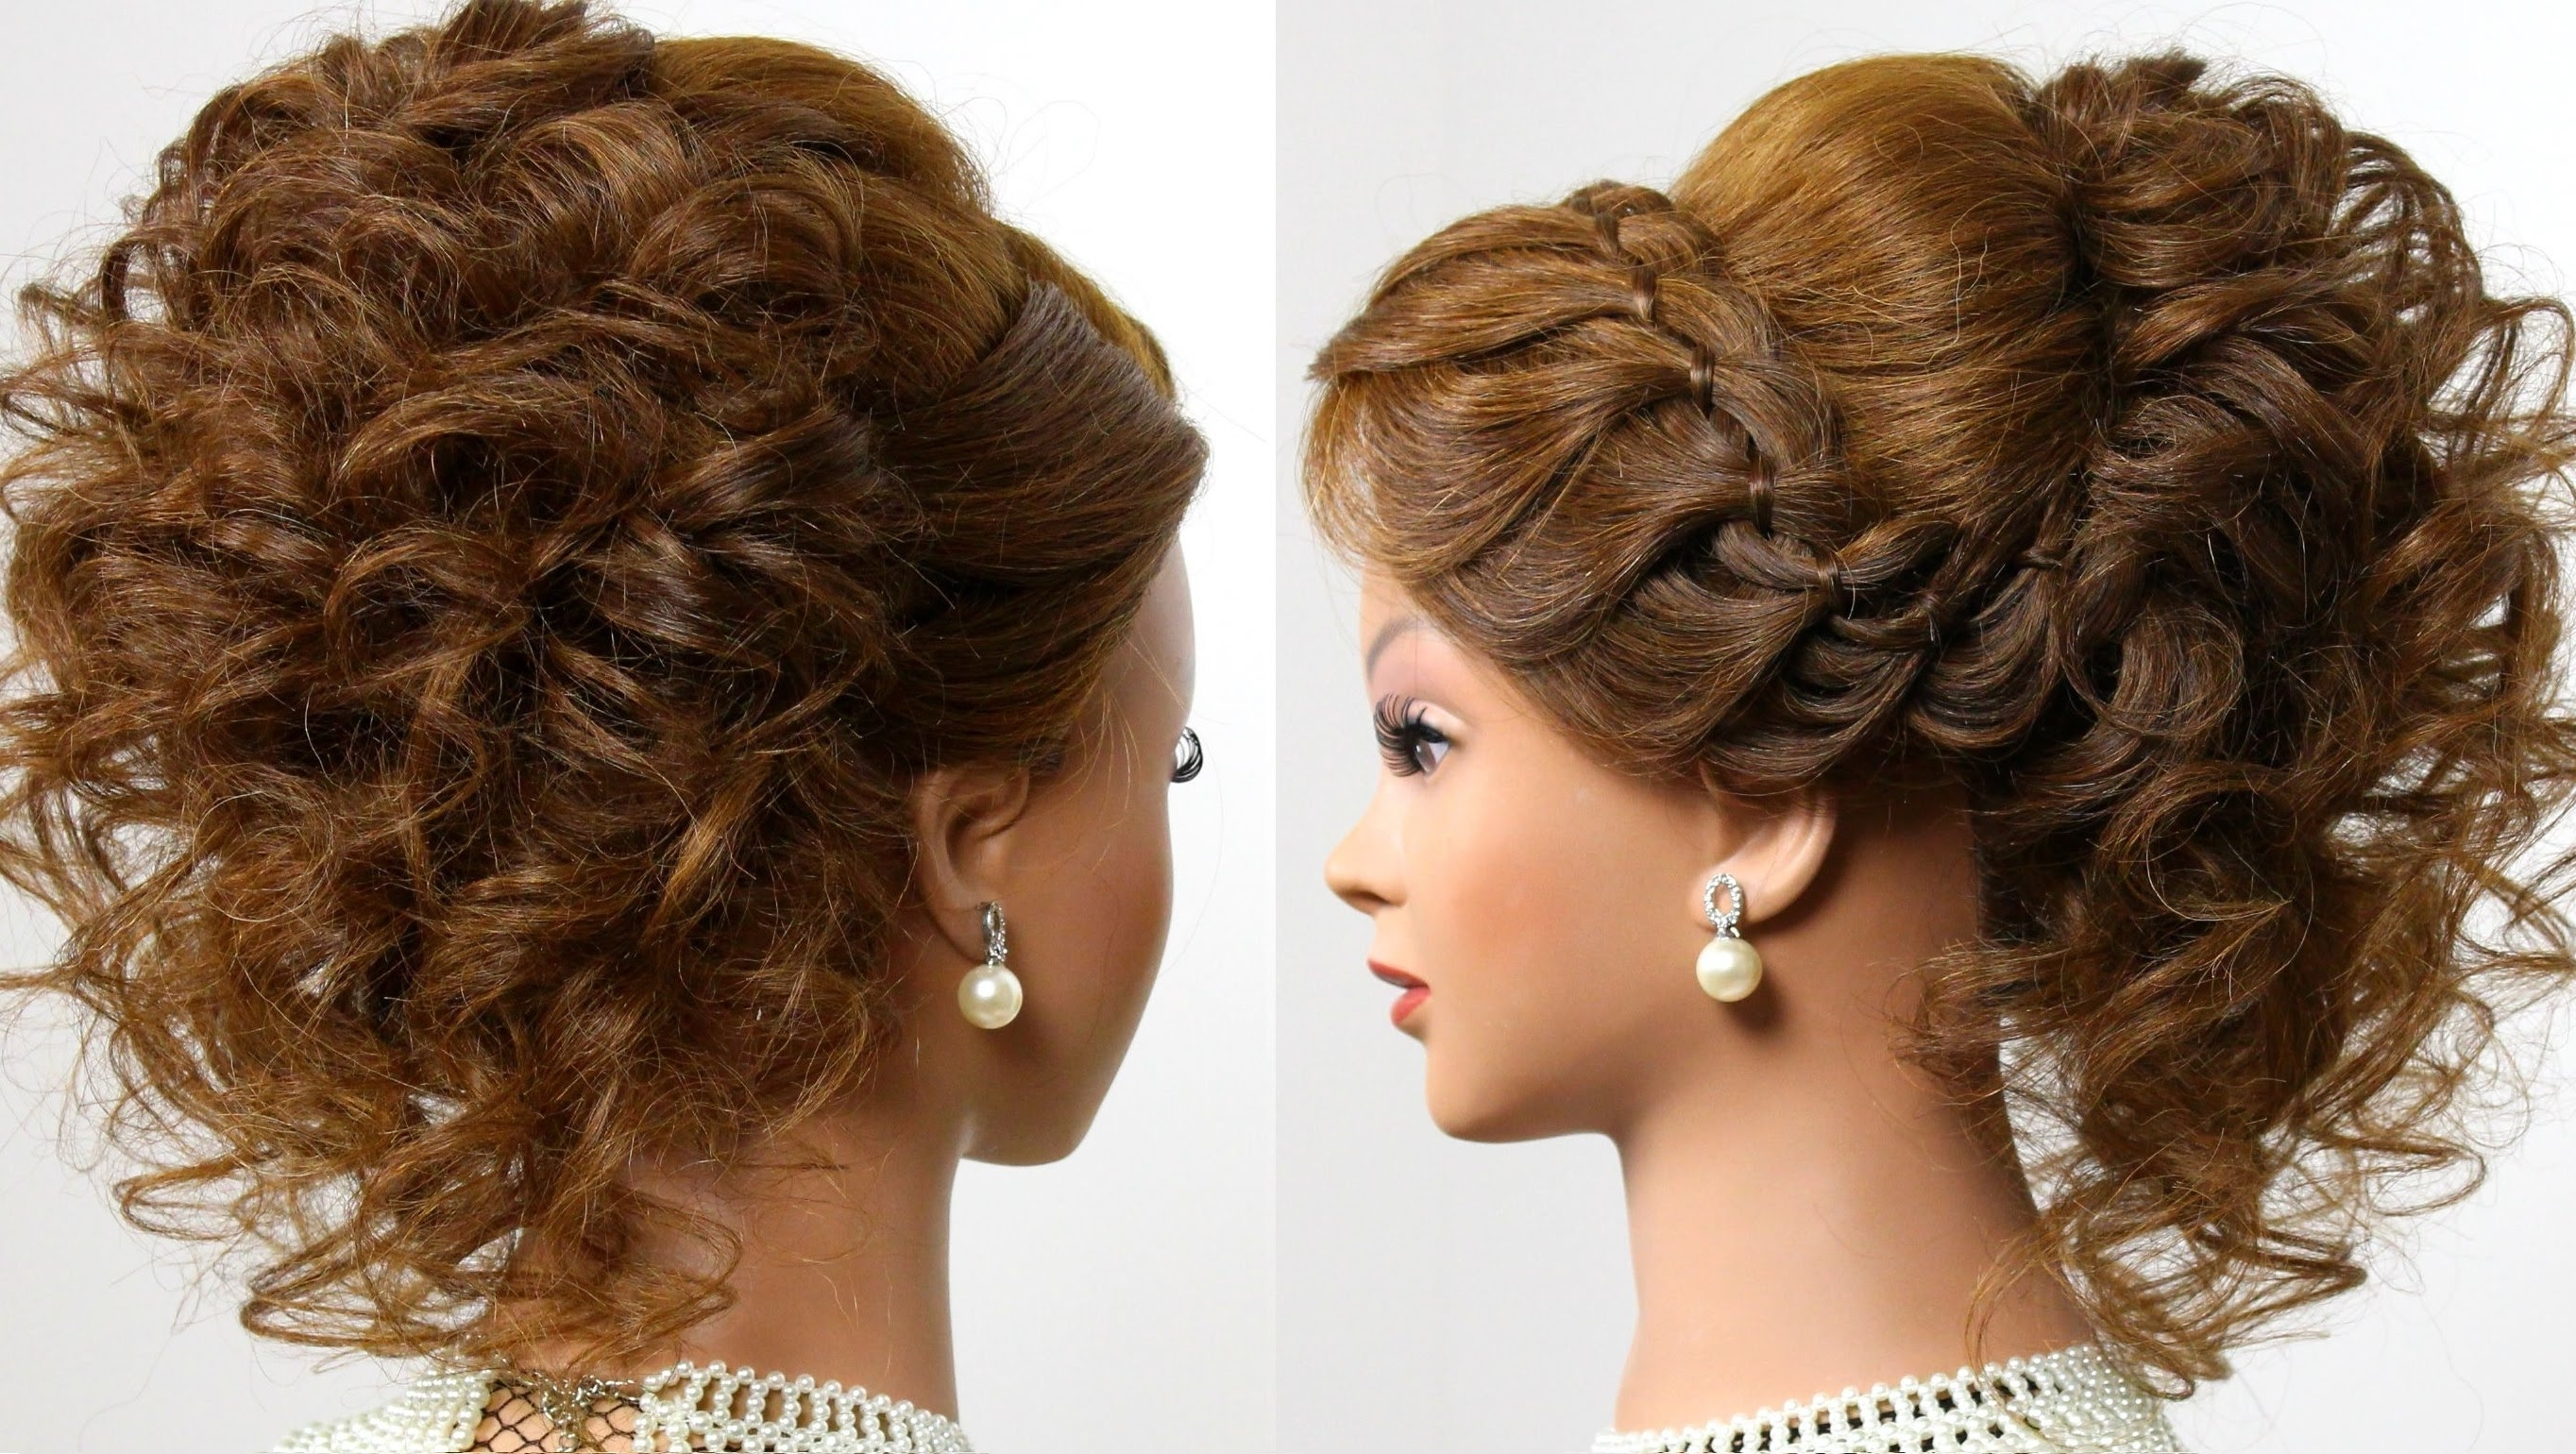 Curly Wedding Prom Hairstyle For Long Hair Sensational Romantic Pertaining To Updo Hairstyles For Wavy Medium Length Hair (View 12 of 15)